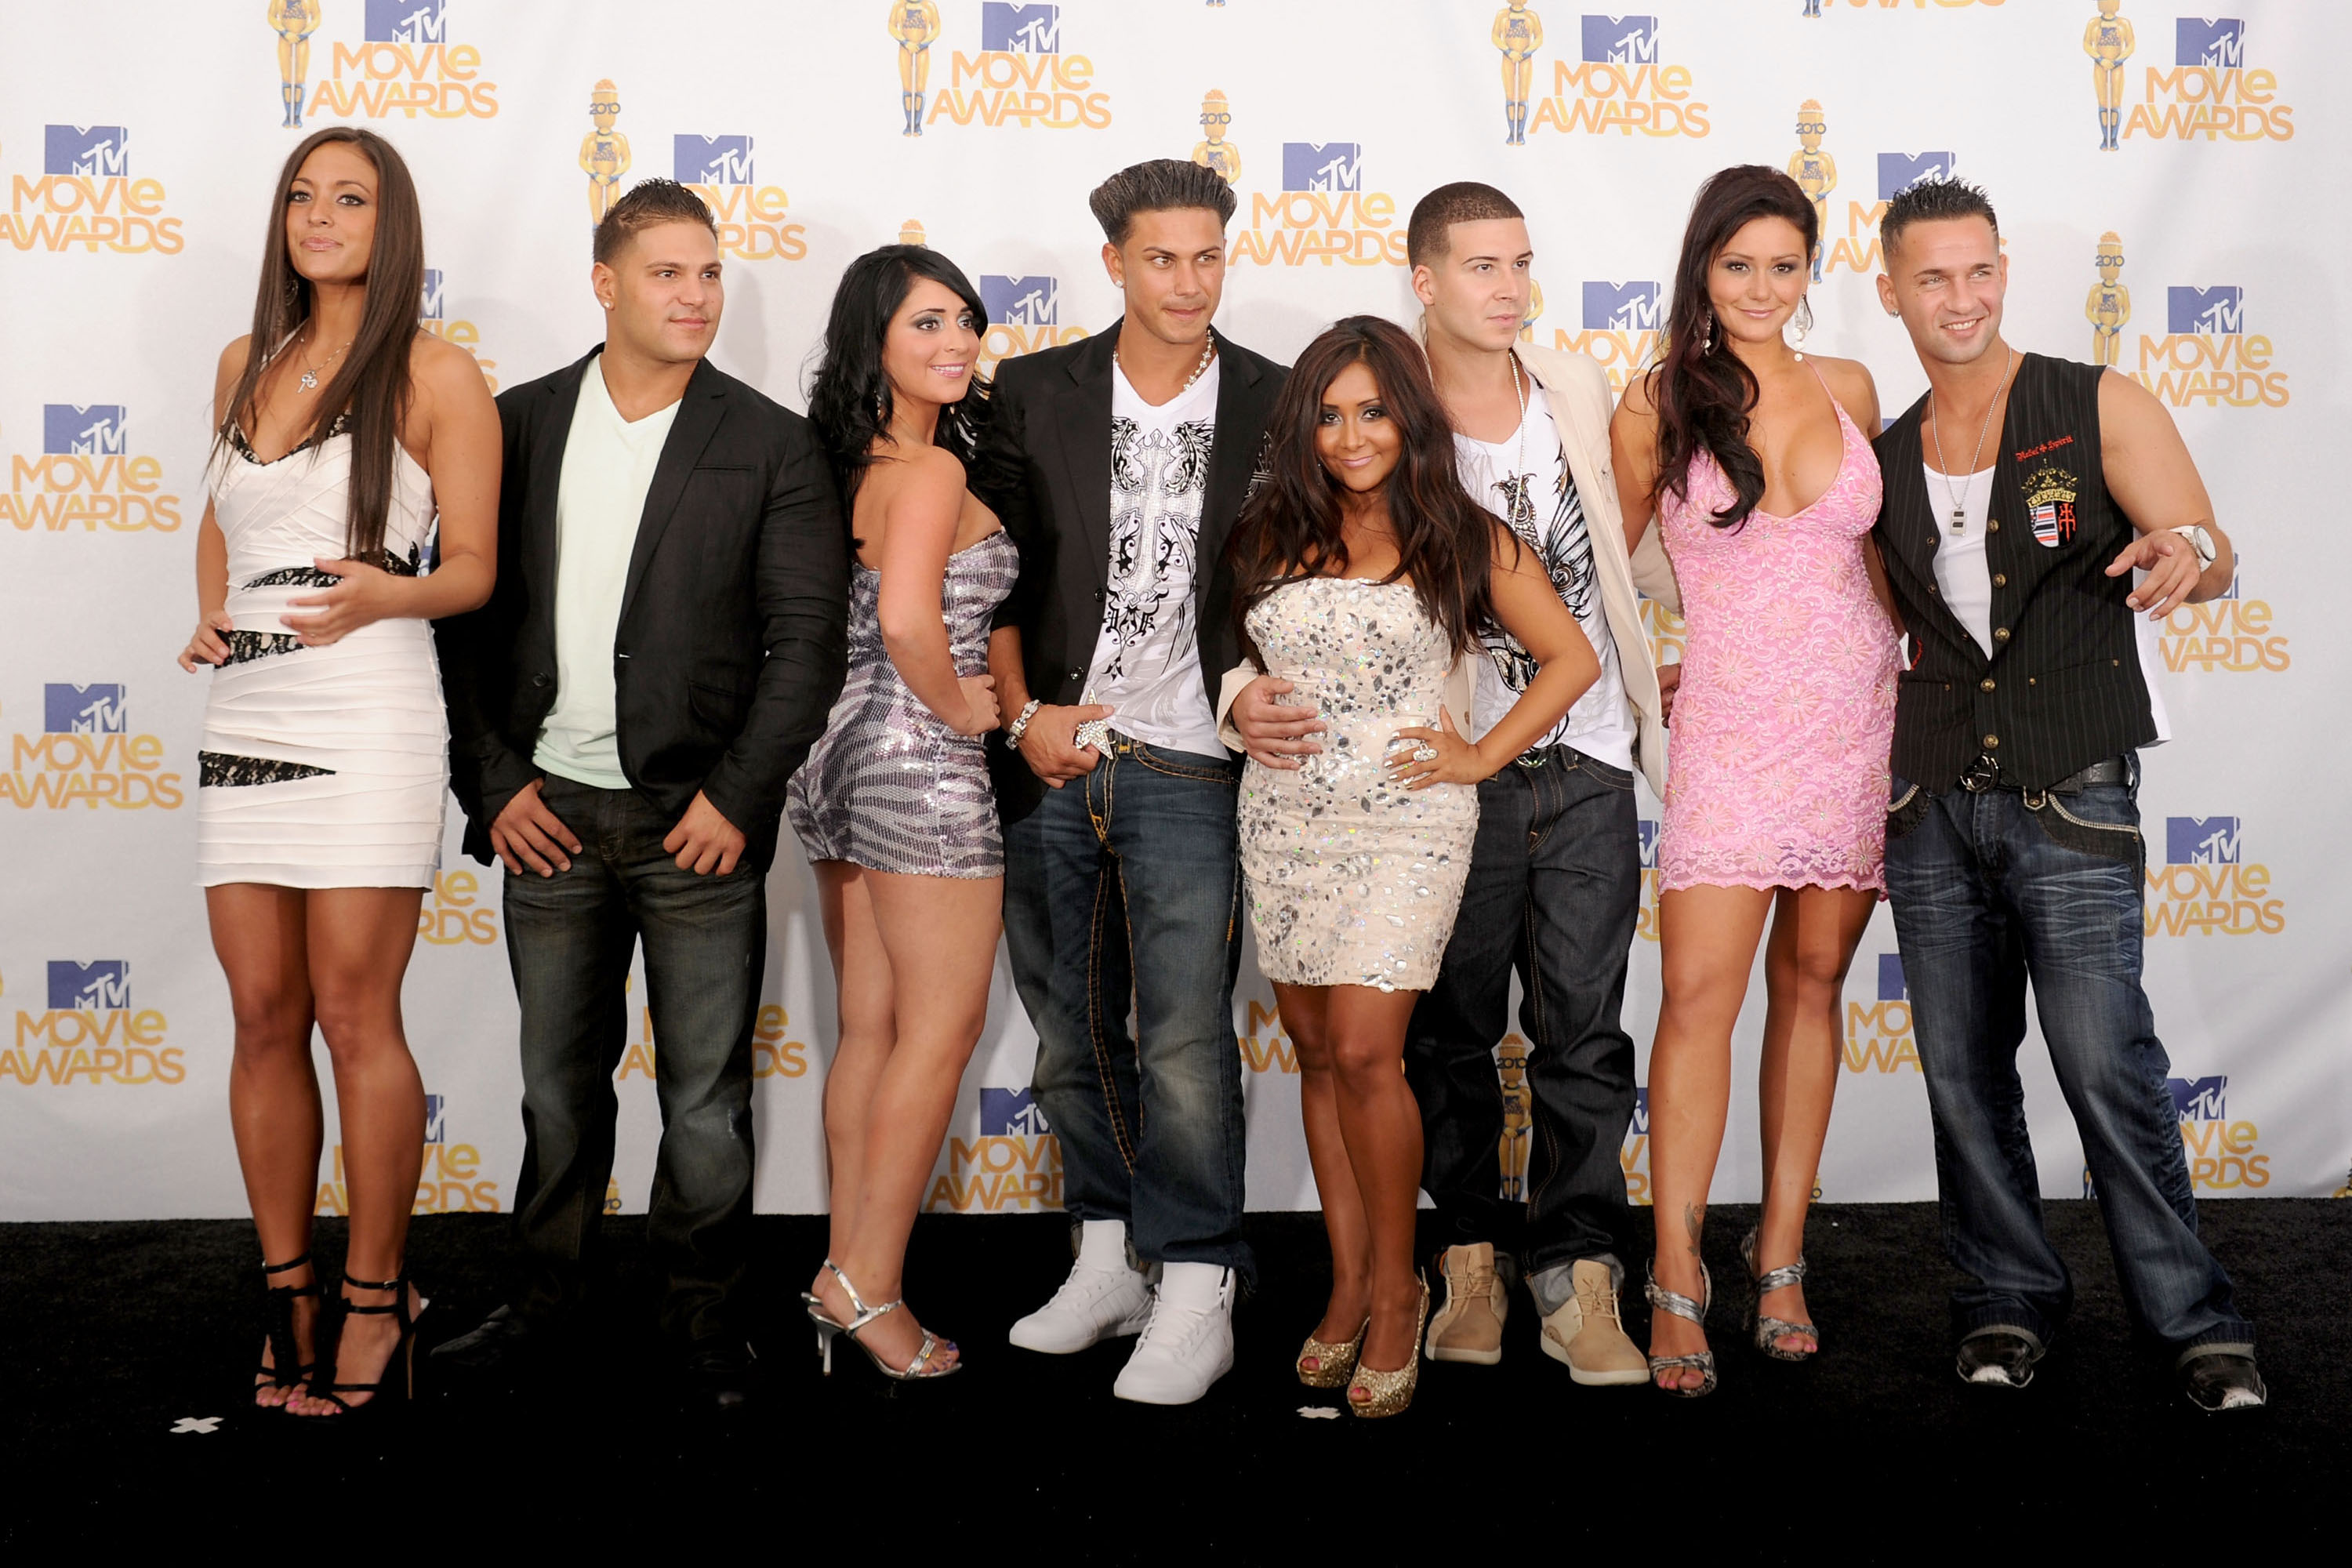 Jersey Shore' is coming back to MTV